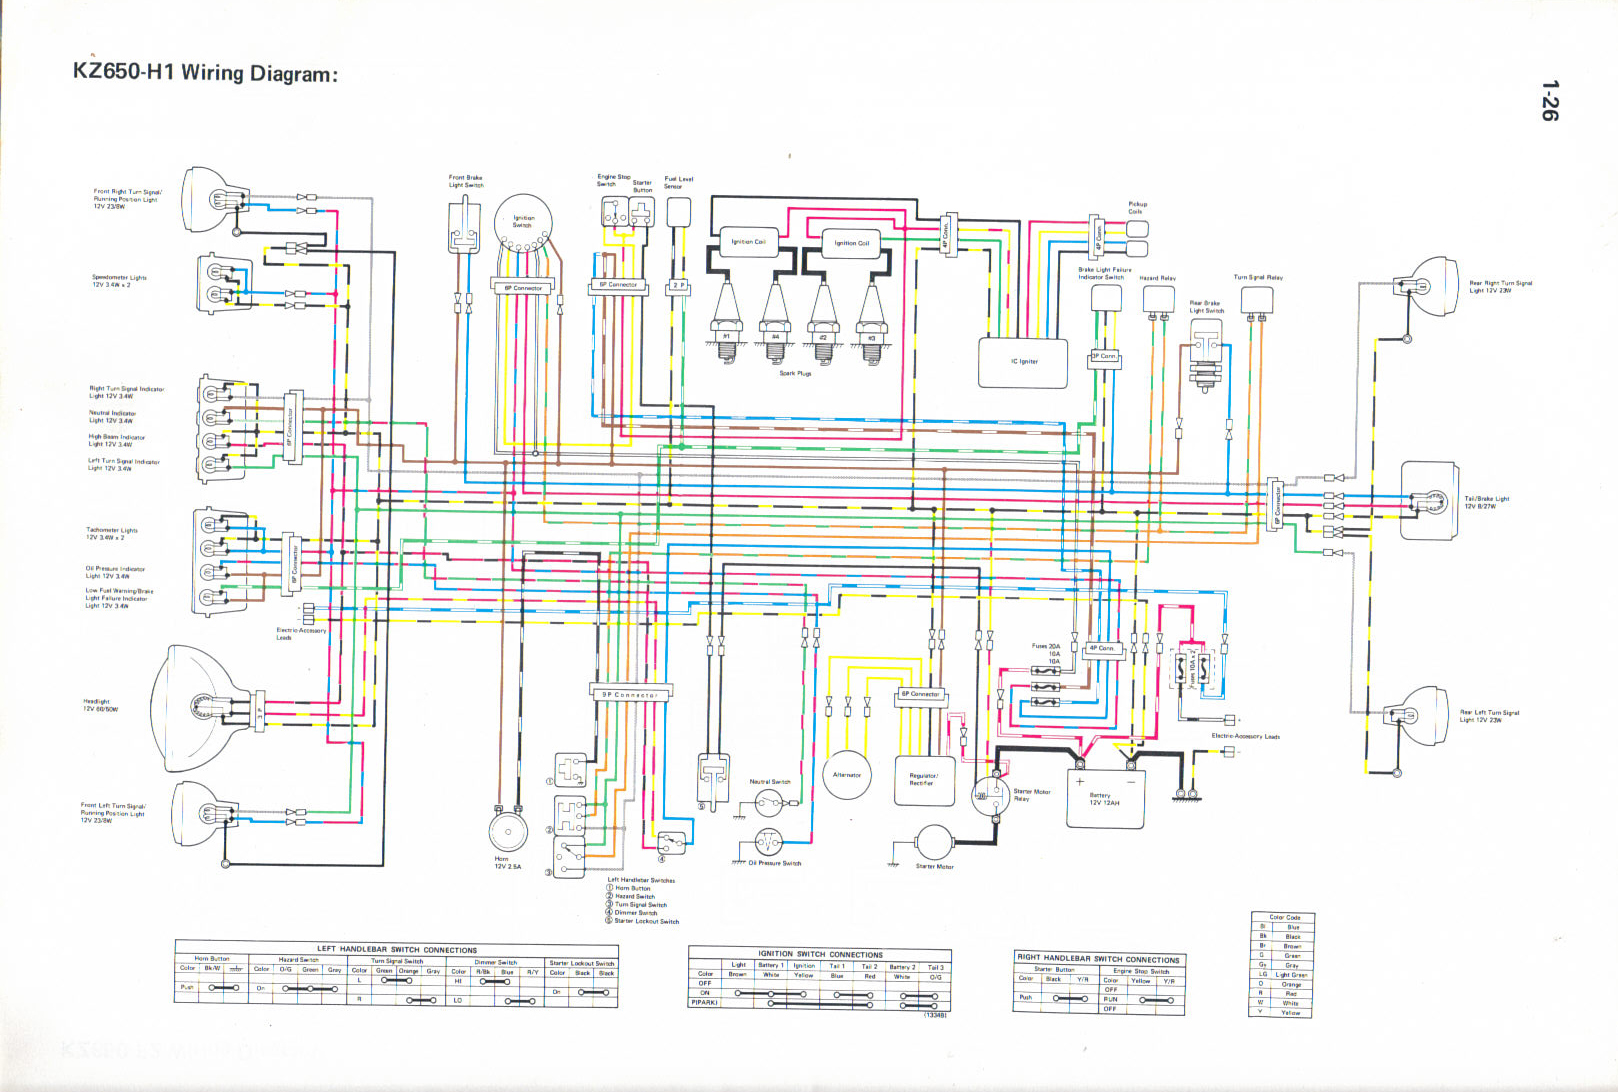 Kz650 Wiring Diagram - Wiring Diagrams Register on